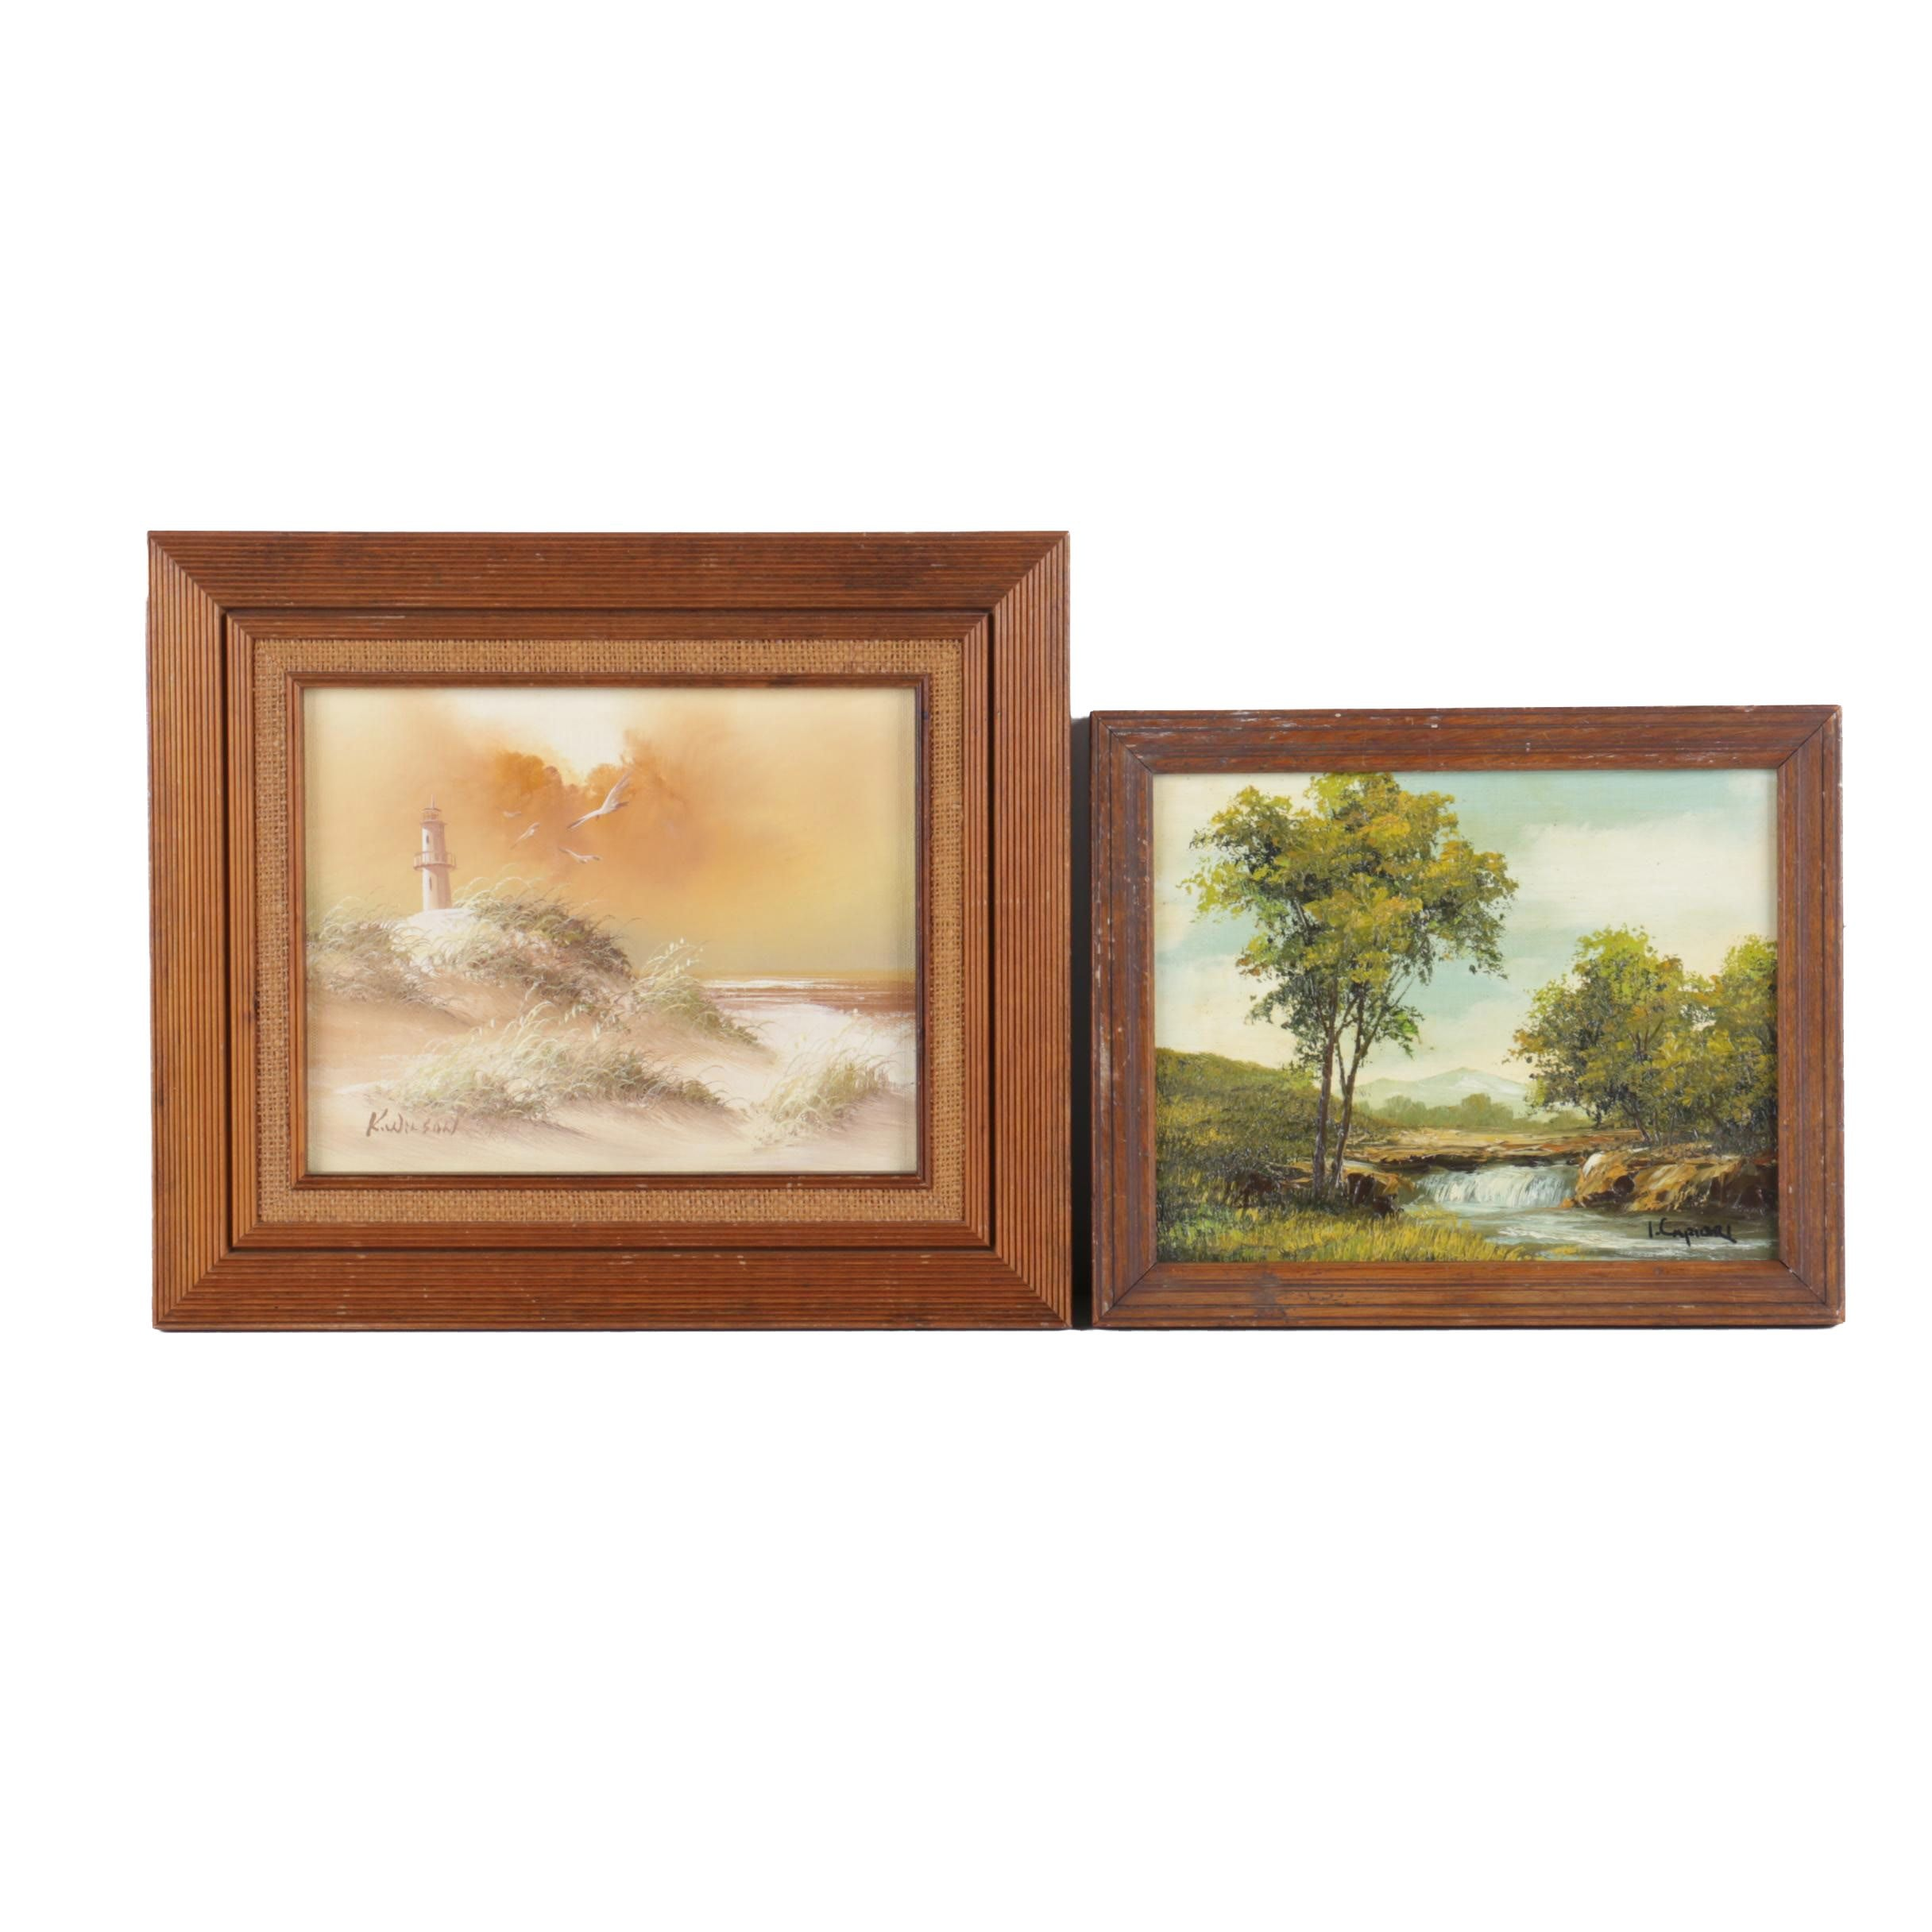 K. Wilson and I. Capiori Oil Paintings of Landscapes